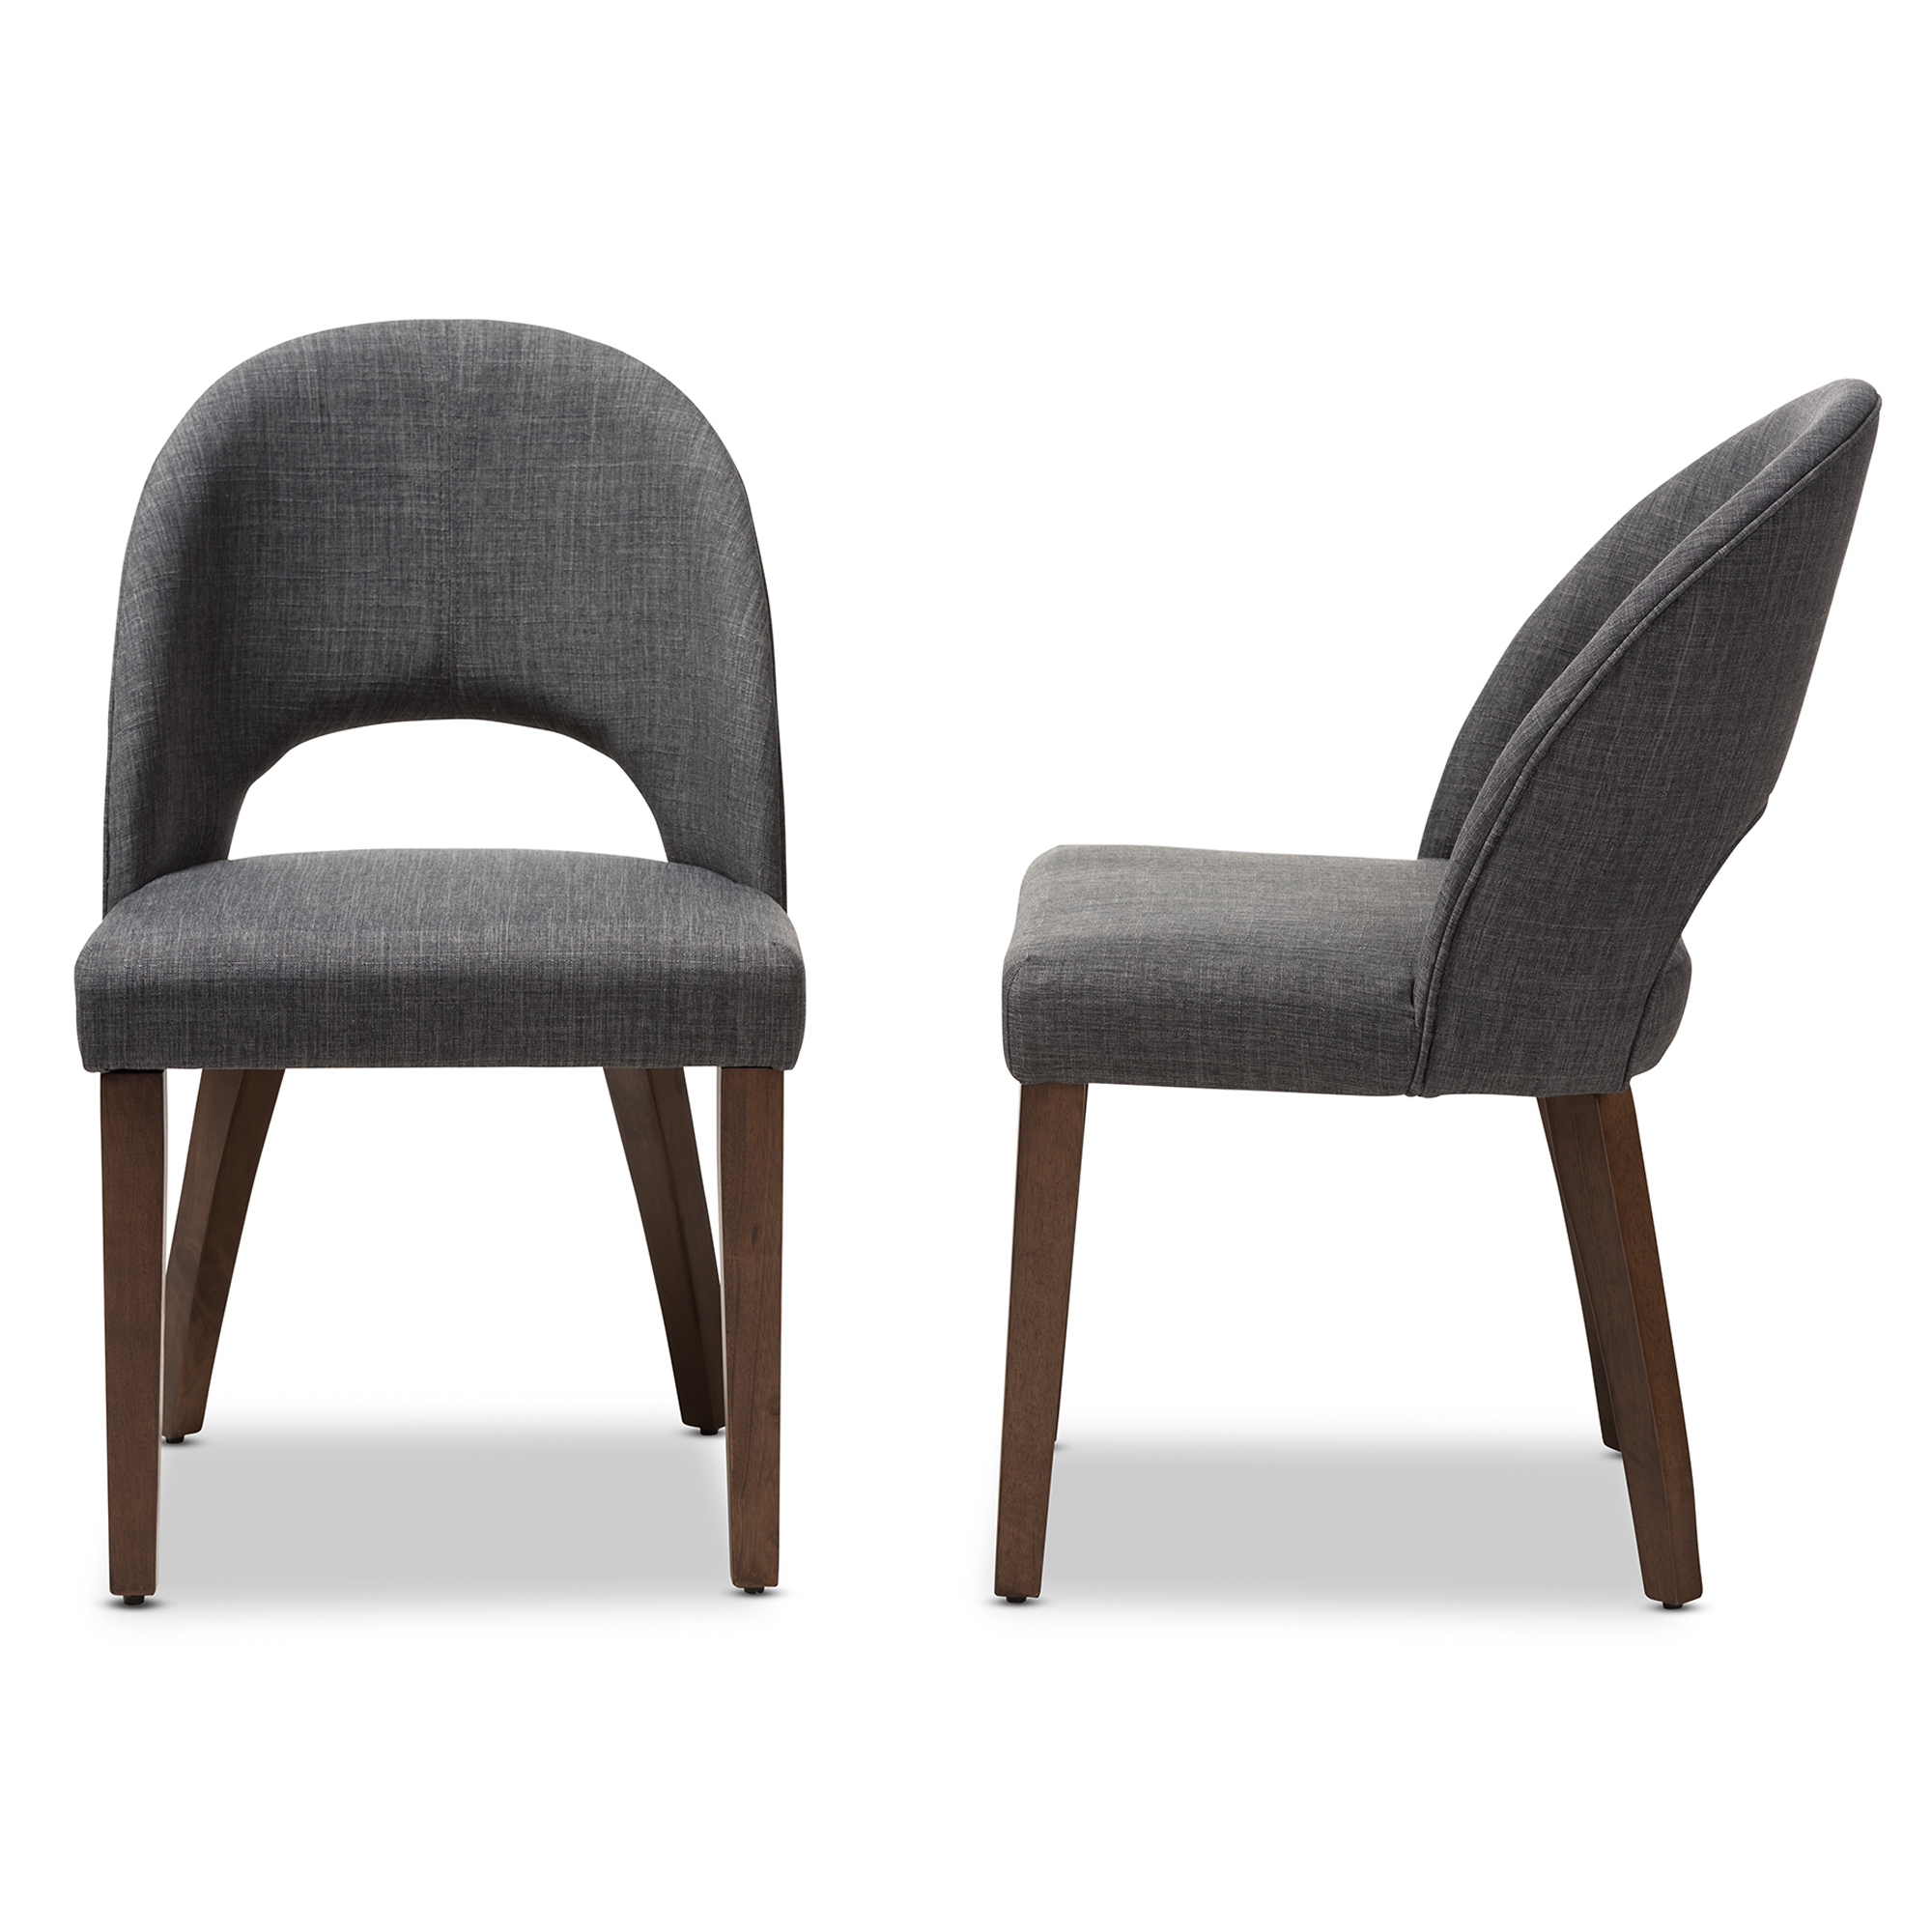 ... Baxton Studio Wesley Mid Century Modern Dark Grey Fabric Upholstered  Walnut Finished Wood Dining Chair ...